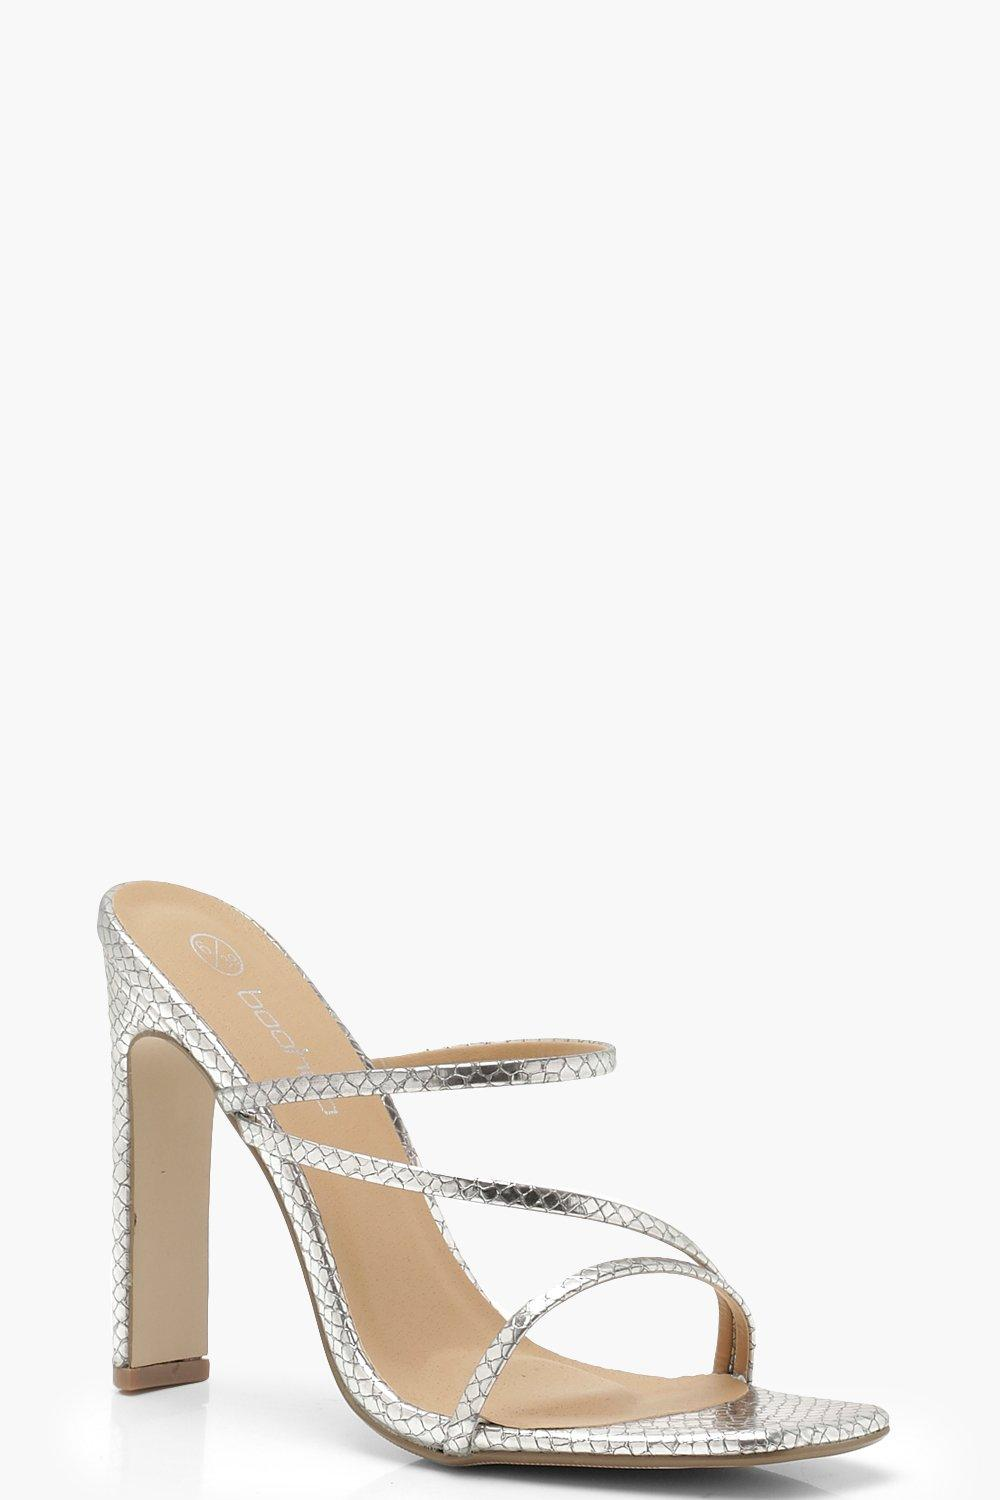 Snake Metallic Cushion Flat Heel Mules